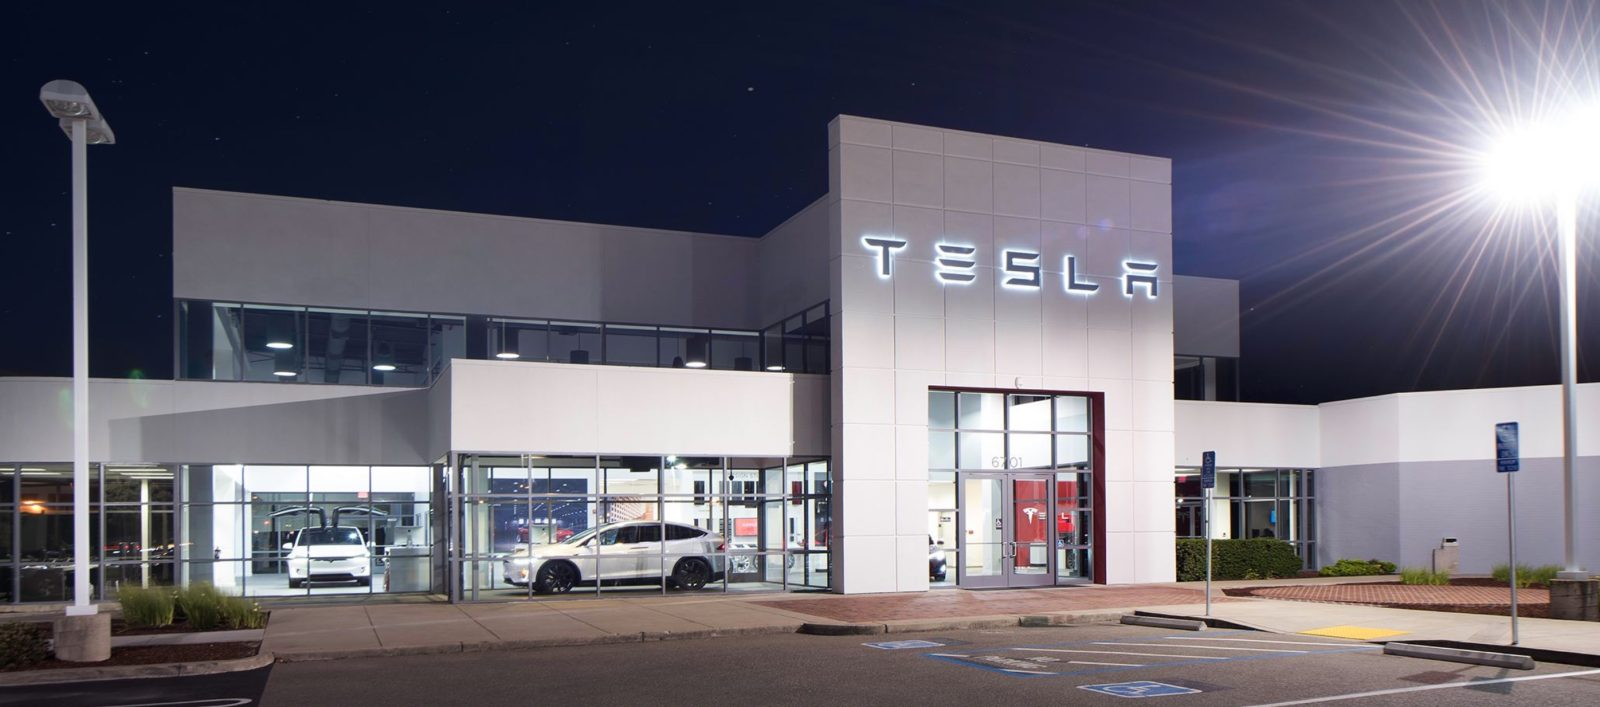 Tesla ends sale commission, increases salaries and stock bonus after compensation cut